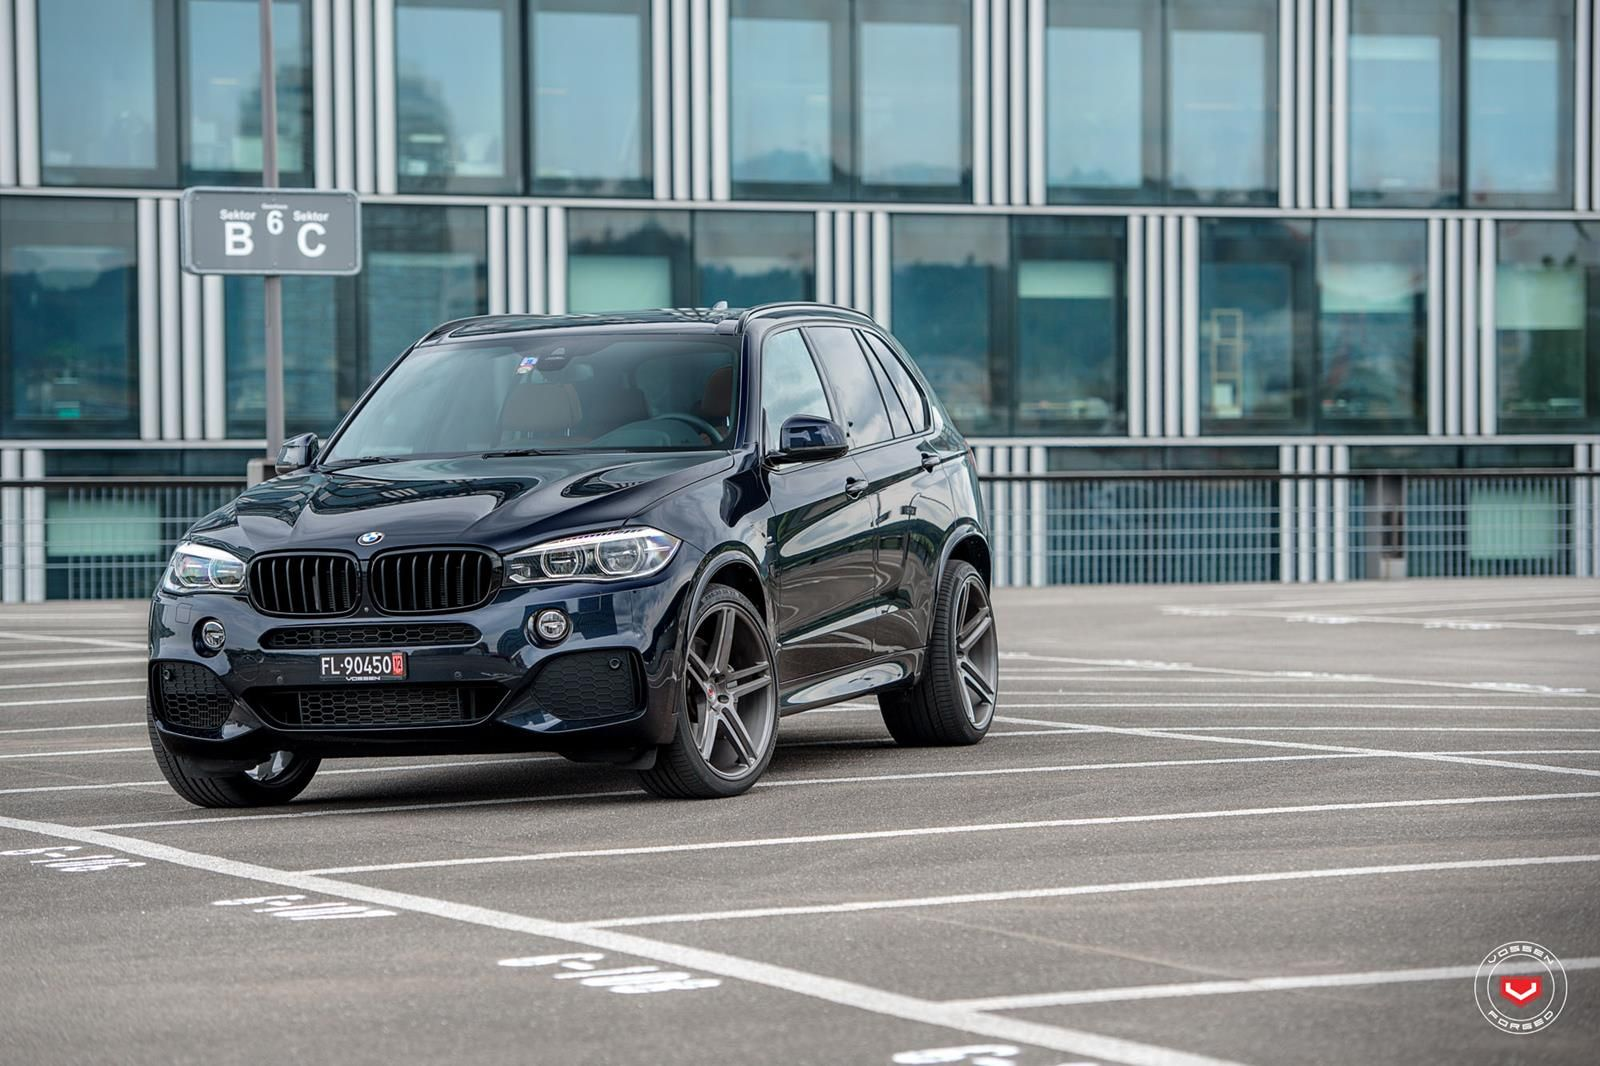 These Custom 22 Wheels Work On Black Bmw X5 Bmw X5